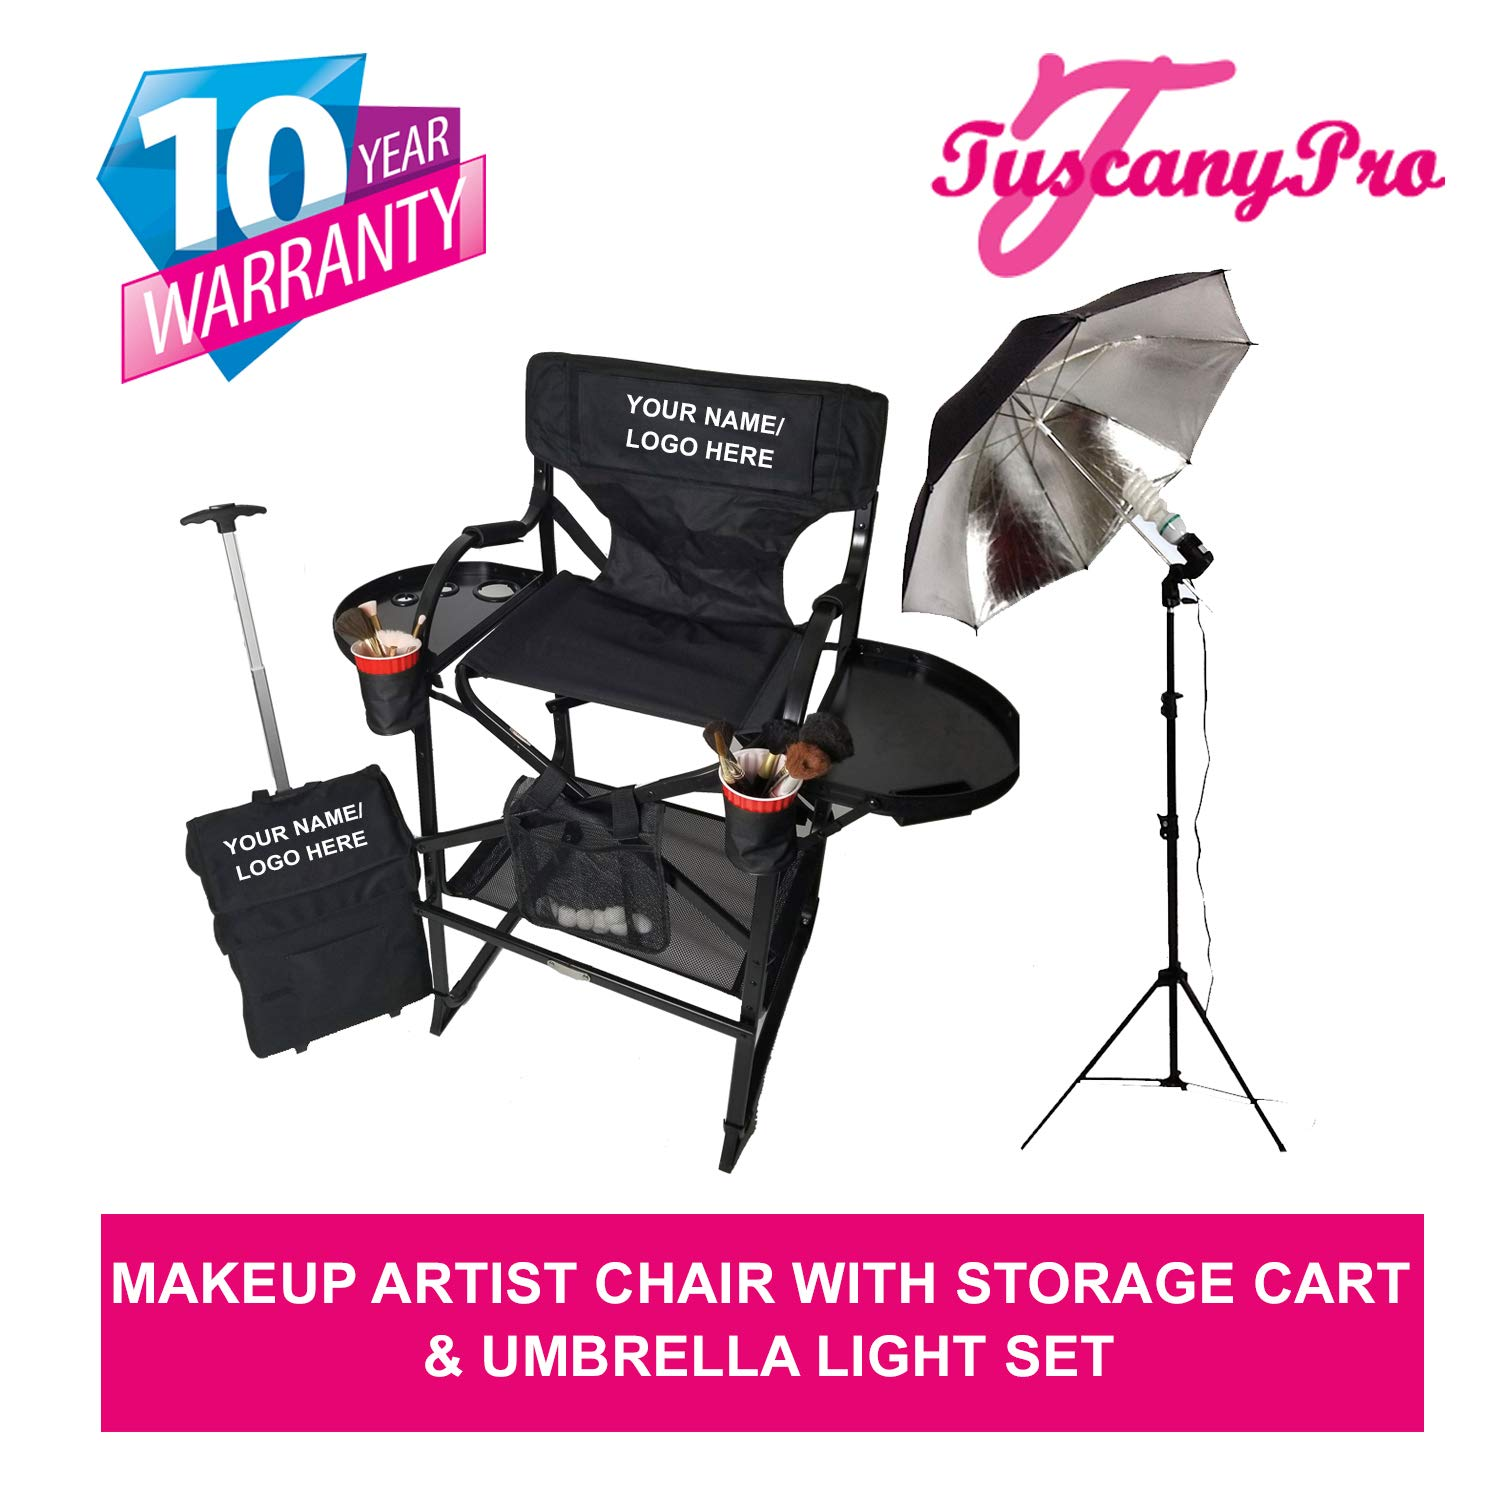 TuscanyPro Portable Makeup Artist Chair with Storage Cart Umbrella Light Set – Perfect for Makeup, Salons, Movie Sets – Italian Design – 10 Years Warranty – US Patented – 29 Inch Seat Height